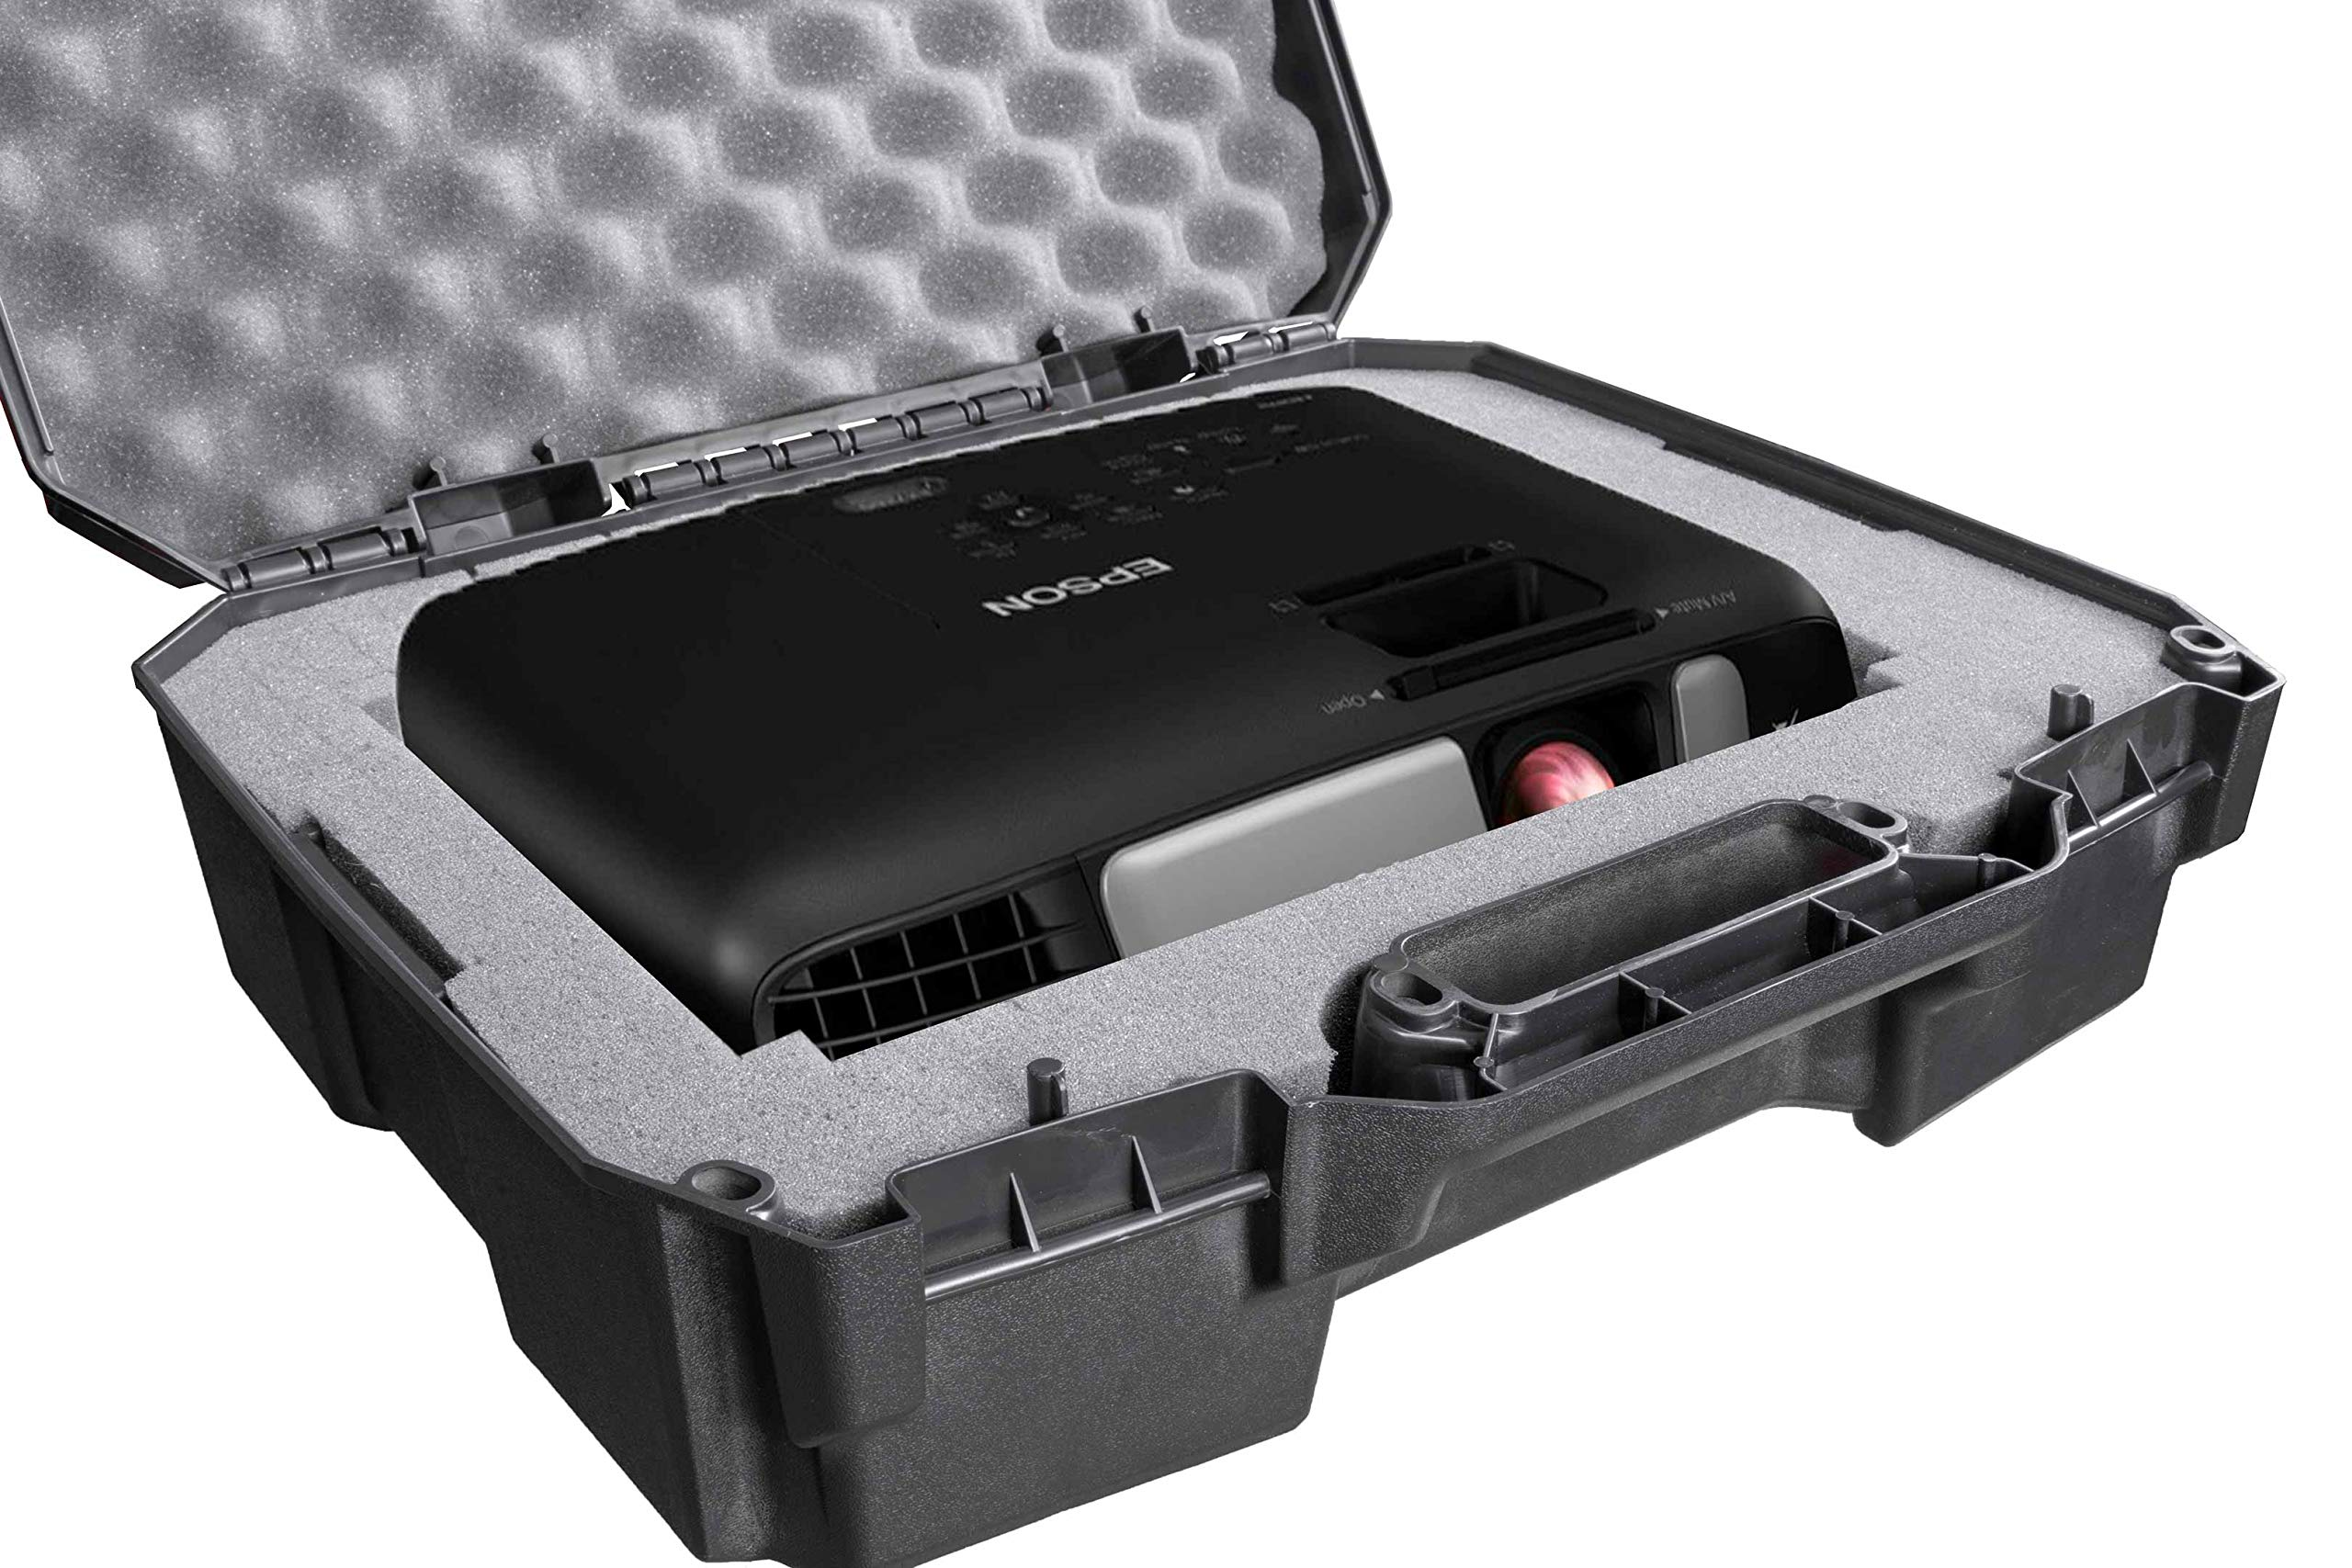 Case Club Projector Case Compatible with Epson VS240, VS345, VS340, EX3260, EX7260, EX3240, EX3220, EX7240, EX7235, and EX7230 Projectors Plus Cords and Remote